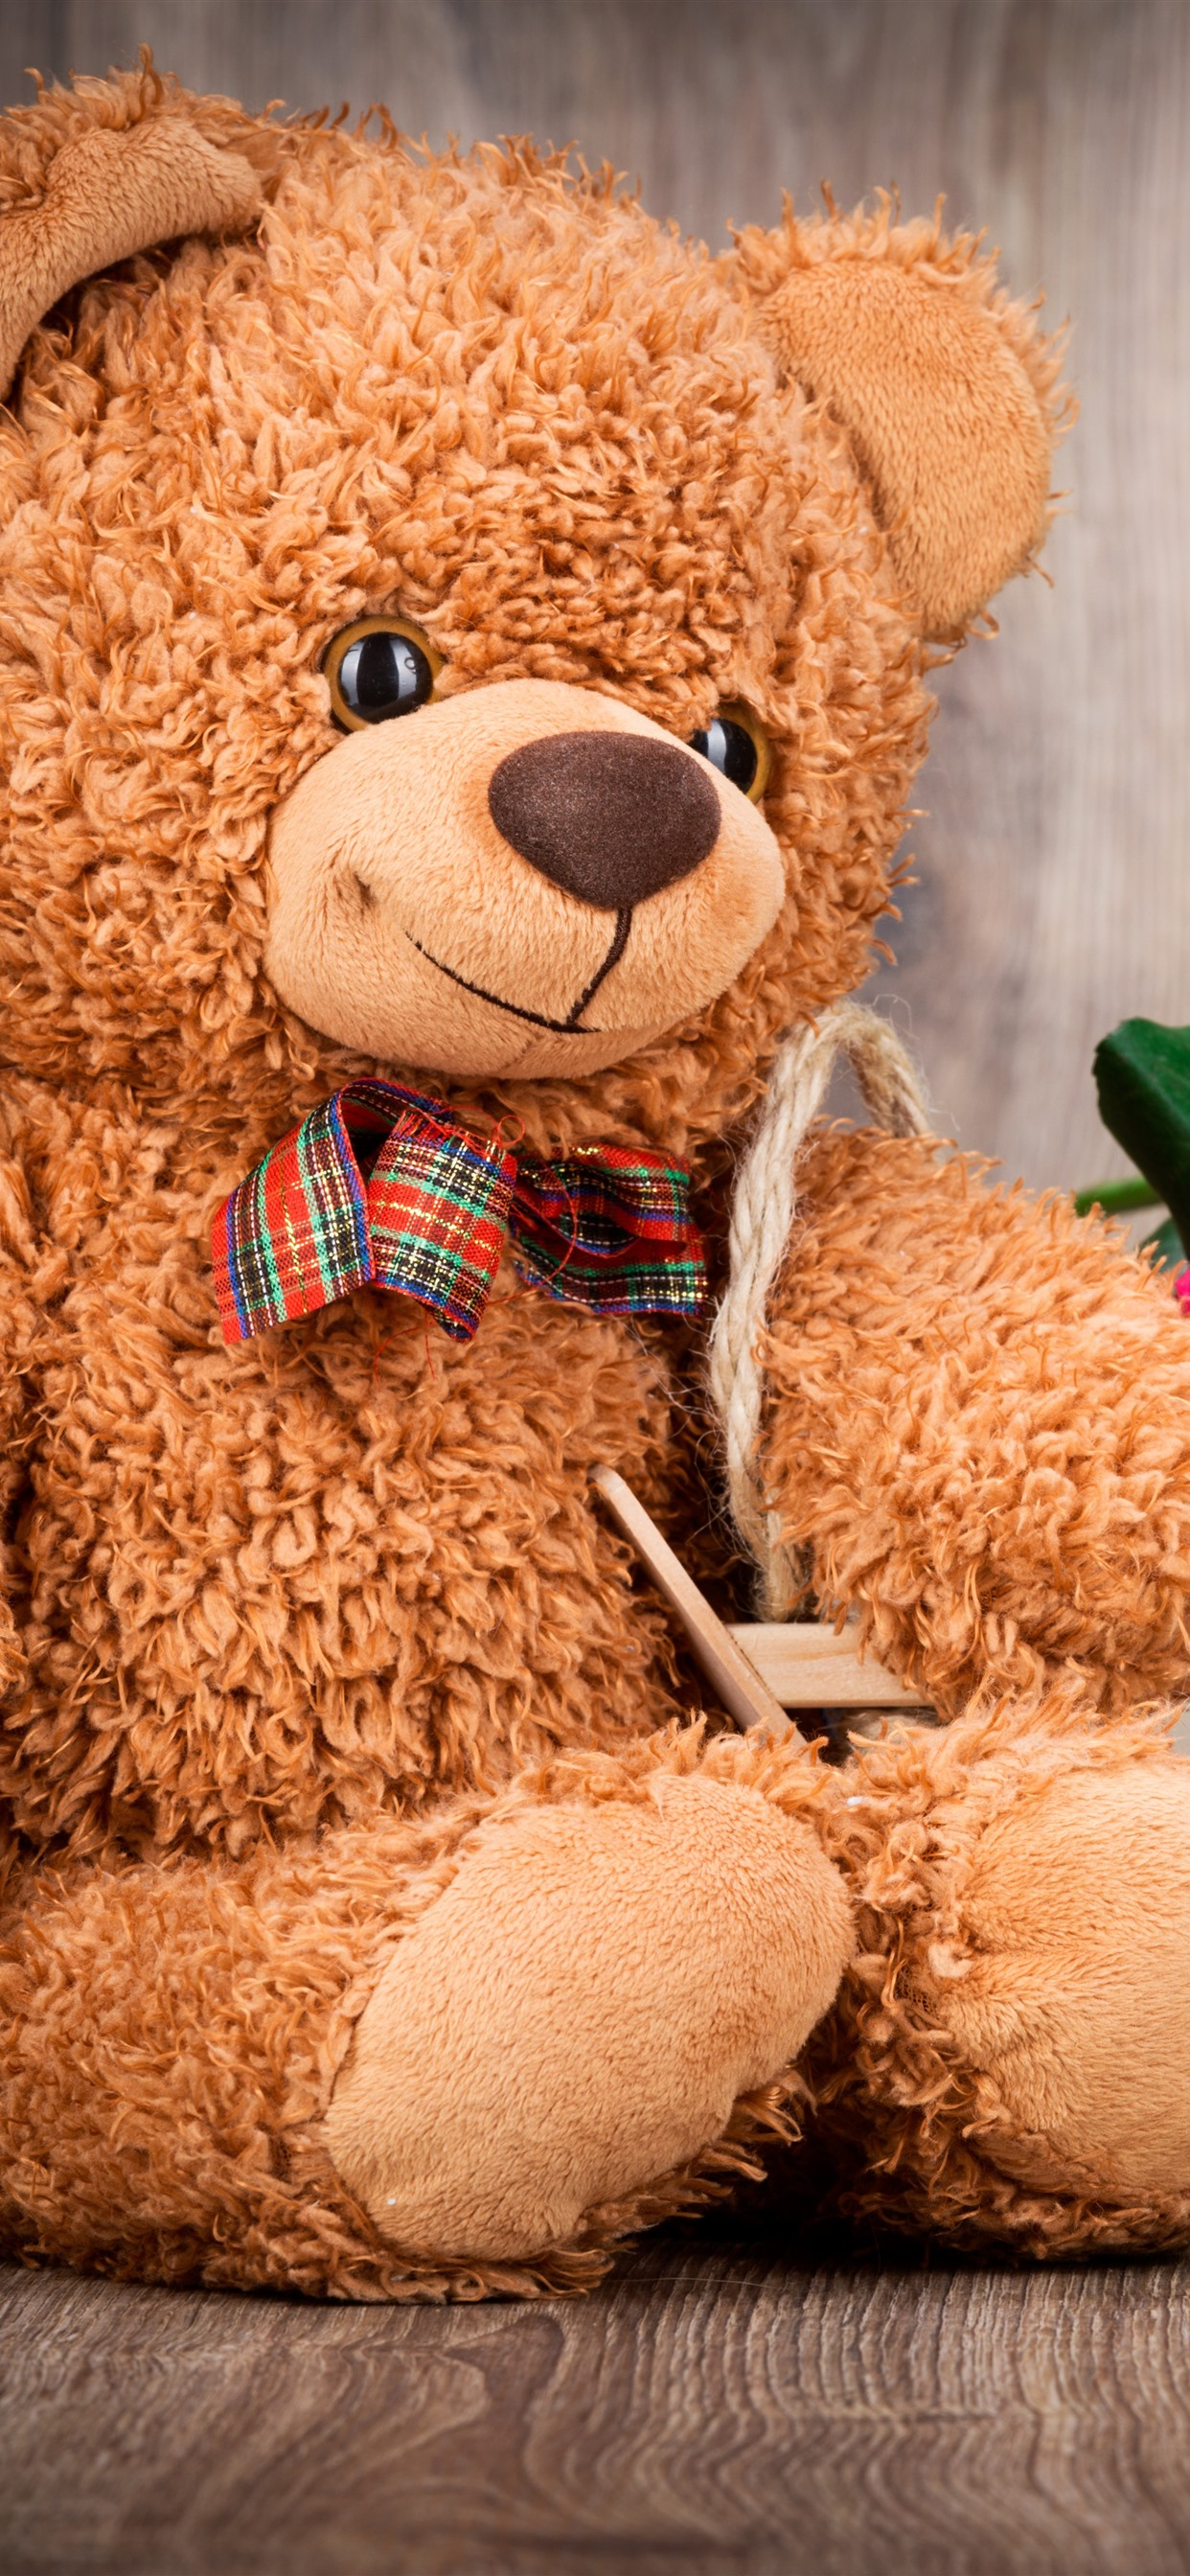 Iphone Wallpaper Teddy Bear And Colorful Roses, Romantic - Thank You Friendship Teddy Bear , HD Wallpaper & Backgrounds